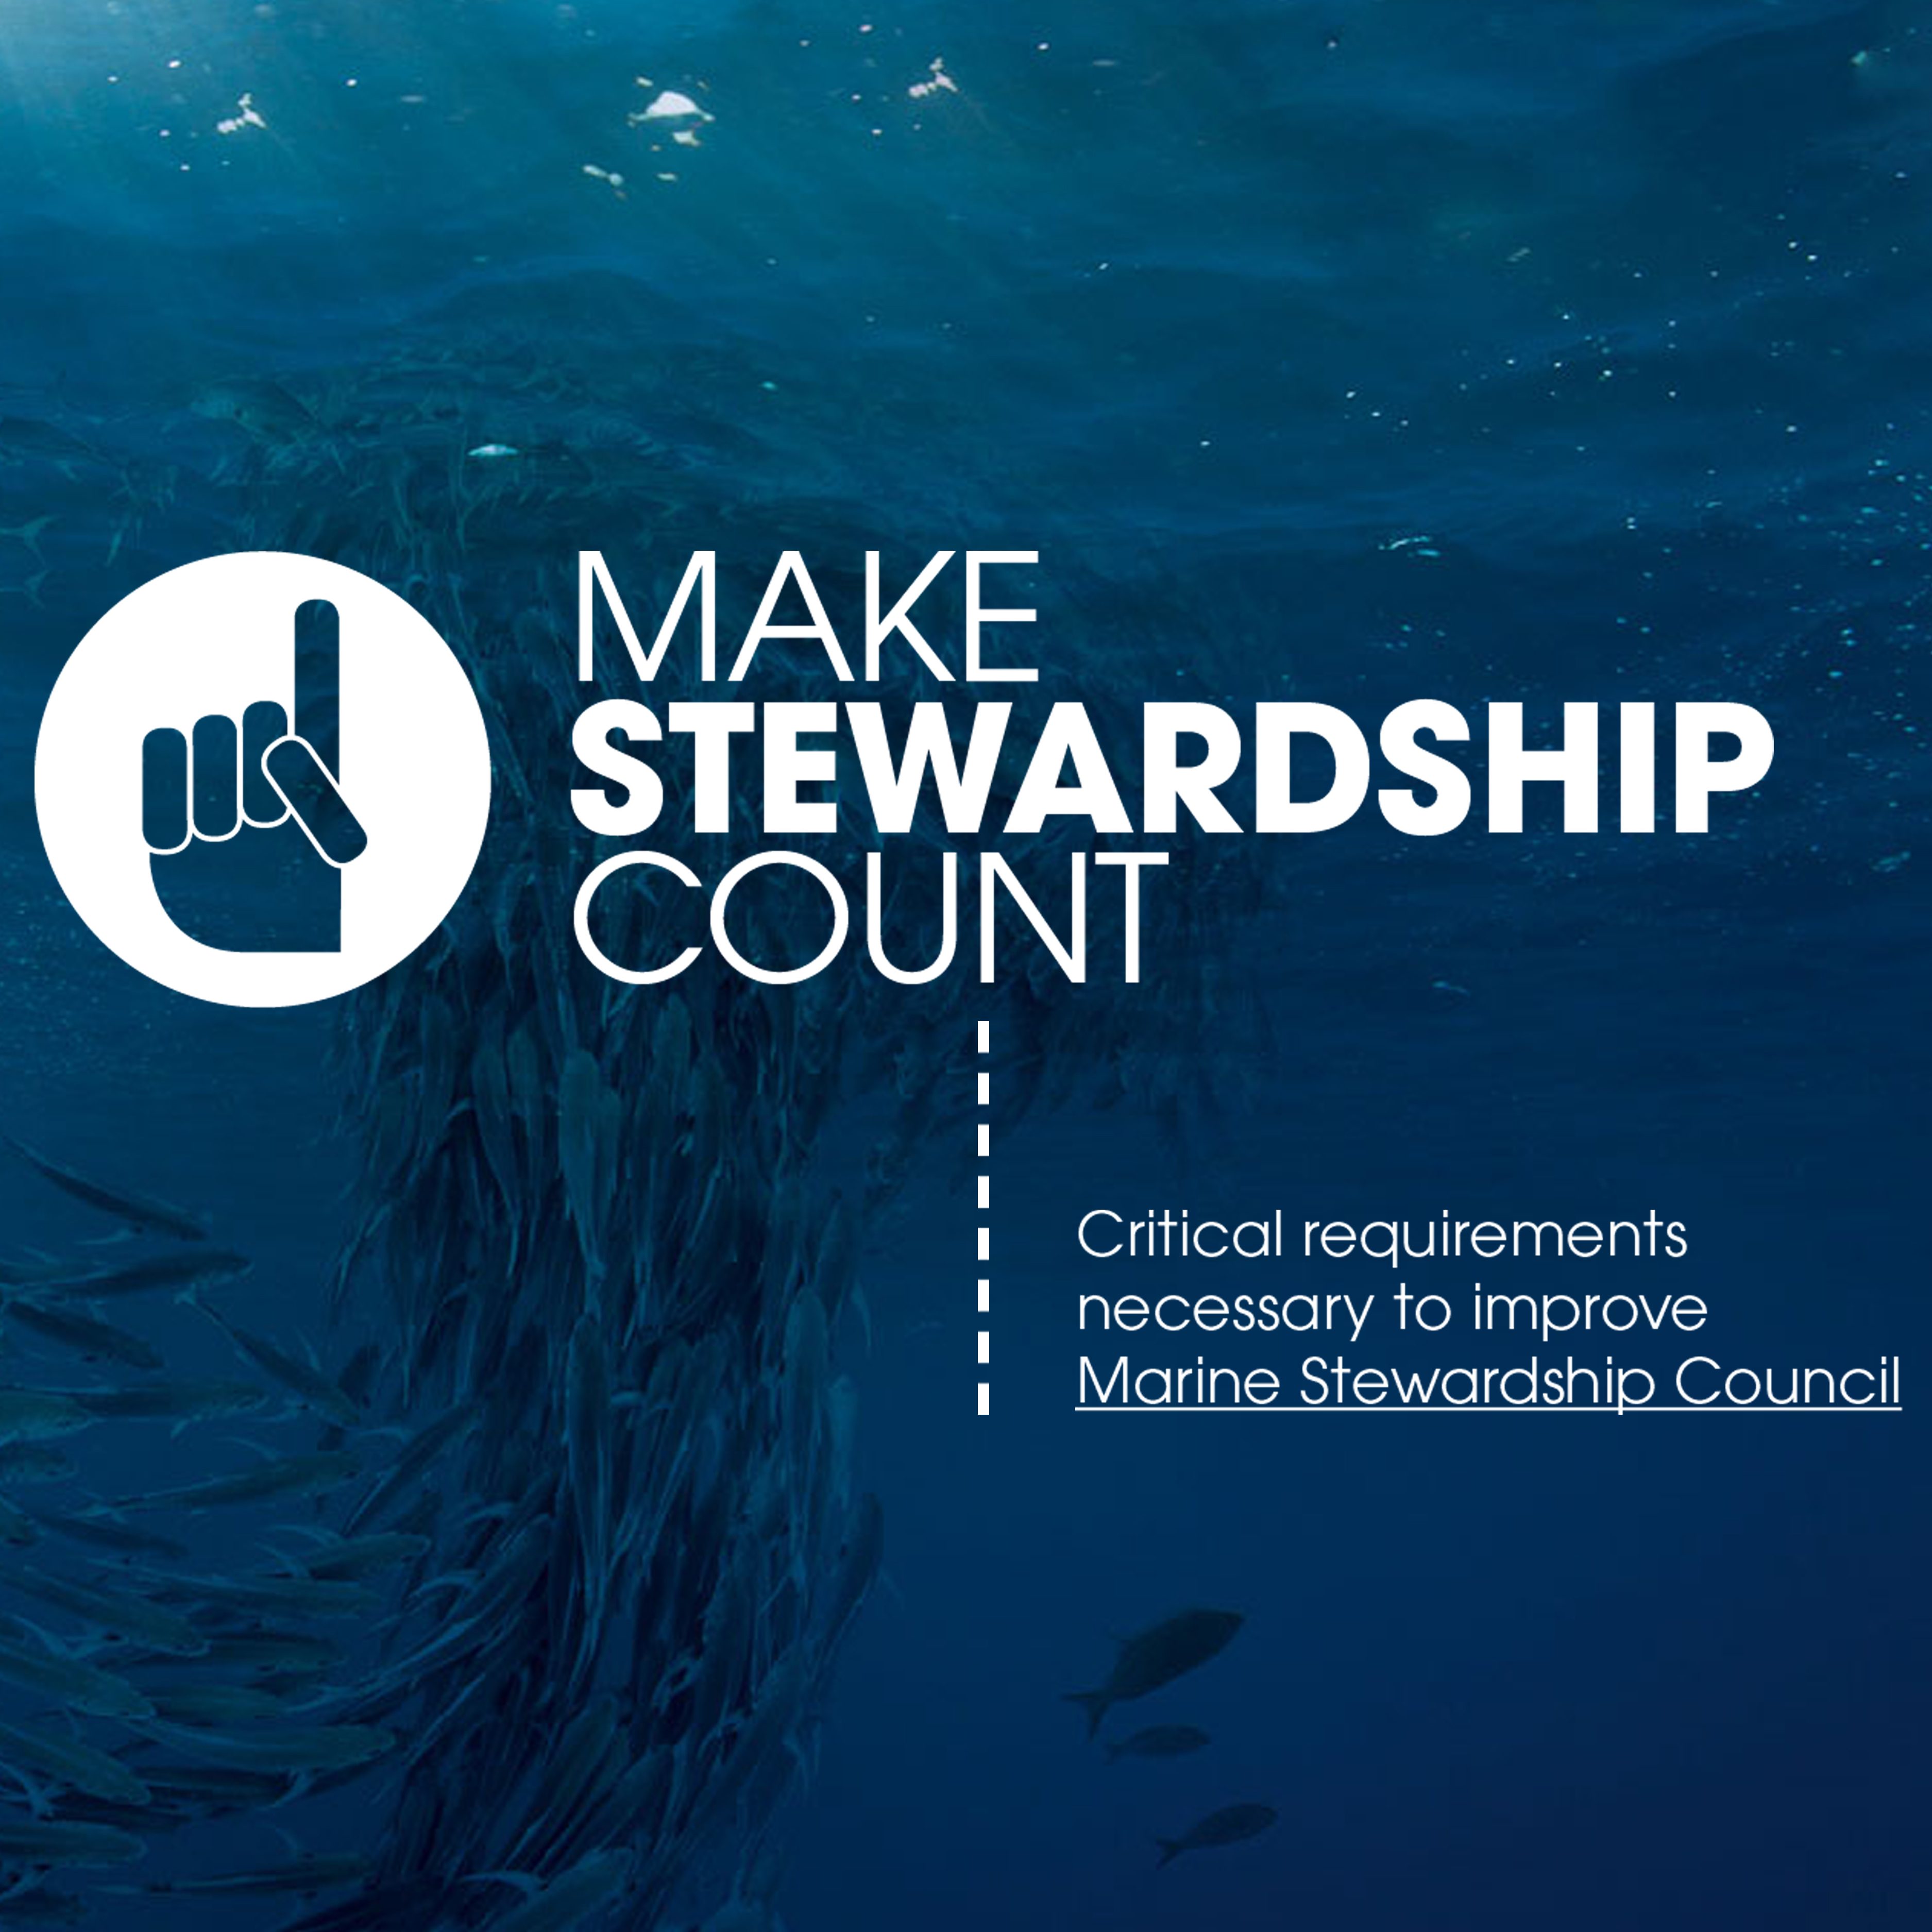 Make Stewardship Count